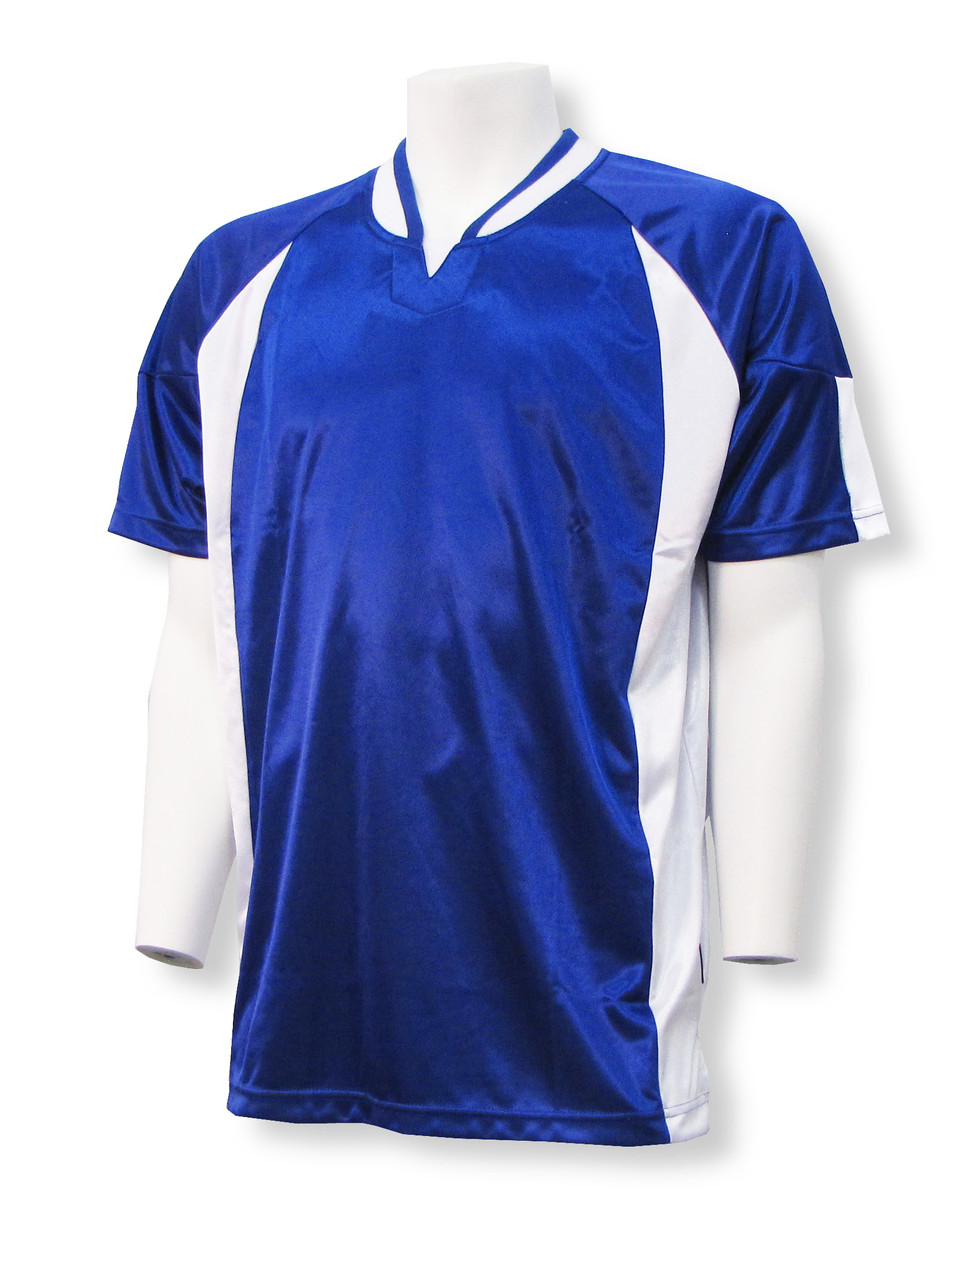 new photos f3d4c a0599 Imperial vintage 90s soccer jersey